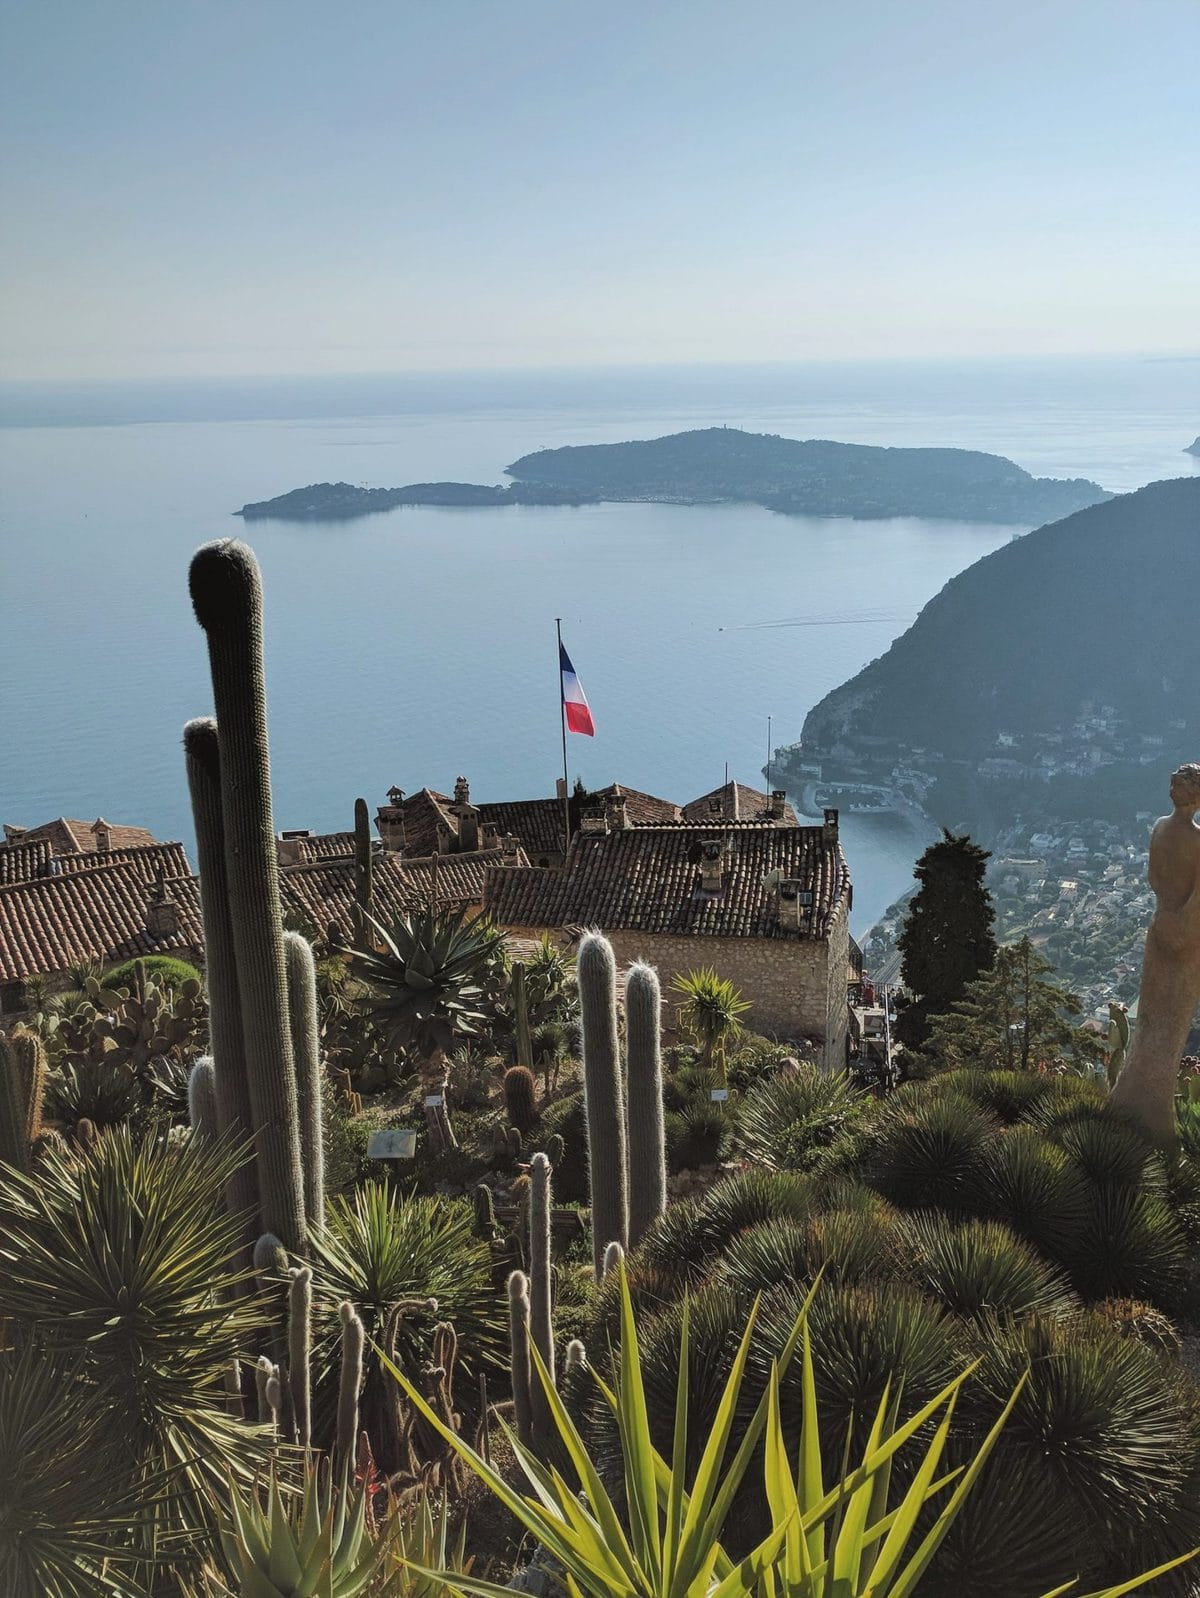 Botanical garden at the top of Eze Village overlooking the ocean